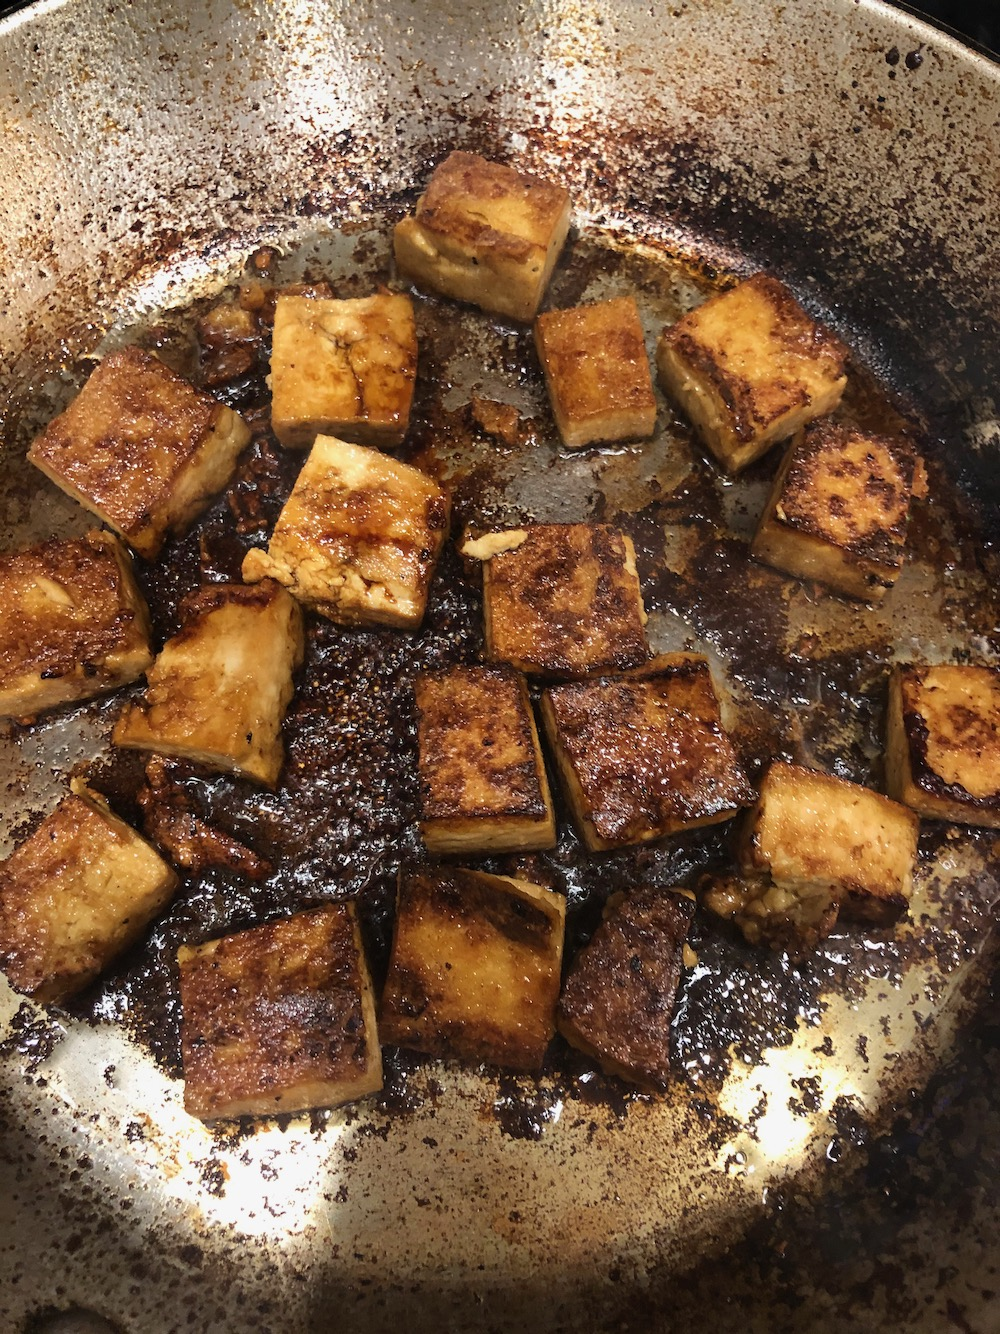 The tofu is almost ready!